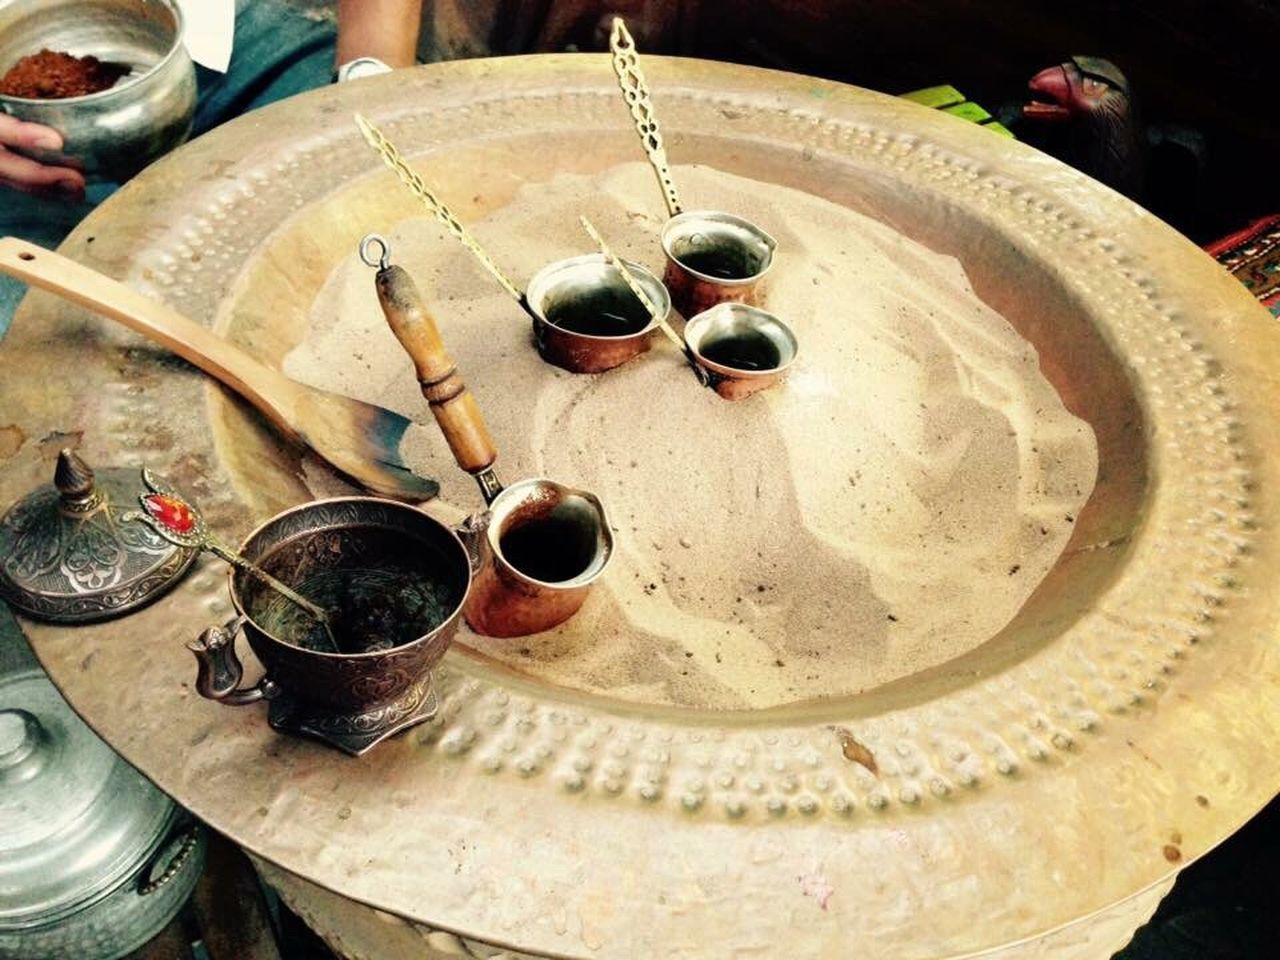 Traditional Turkish Coffee High Angle View No People Indoors  Day Coffee Coffee Time Coffee Break EyeEmNewHere EyeEmBestPics EyeEm Best Shots Eye4photography  EyeEm Gallery Eyeemphotography Tasty Aroma Coffee Cup